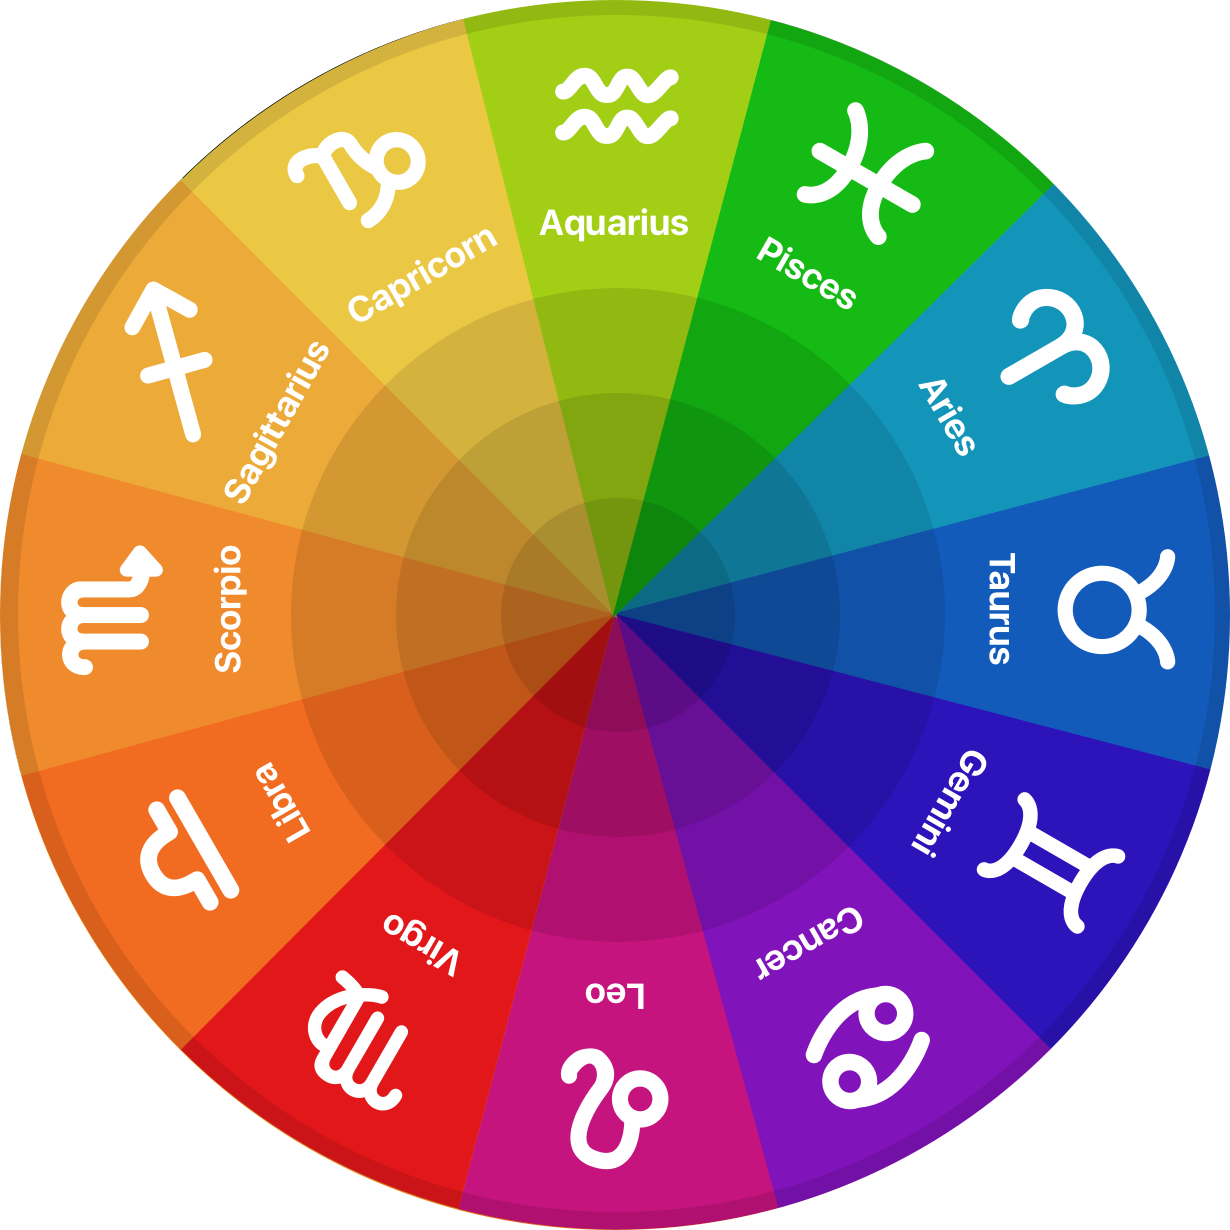 About astrology zodiac signs com